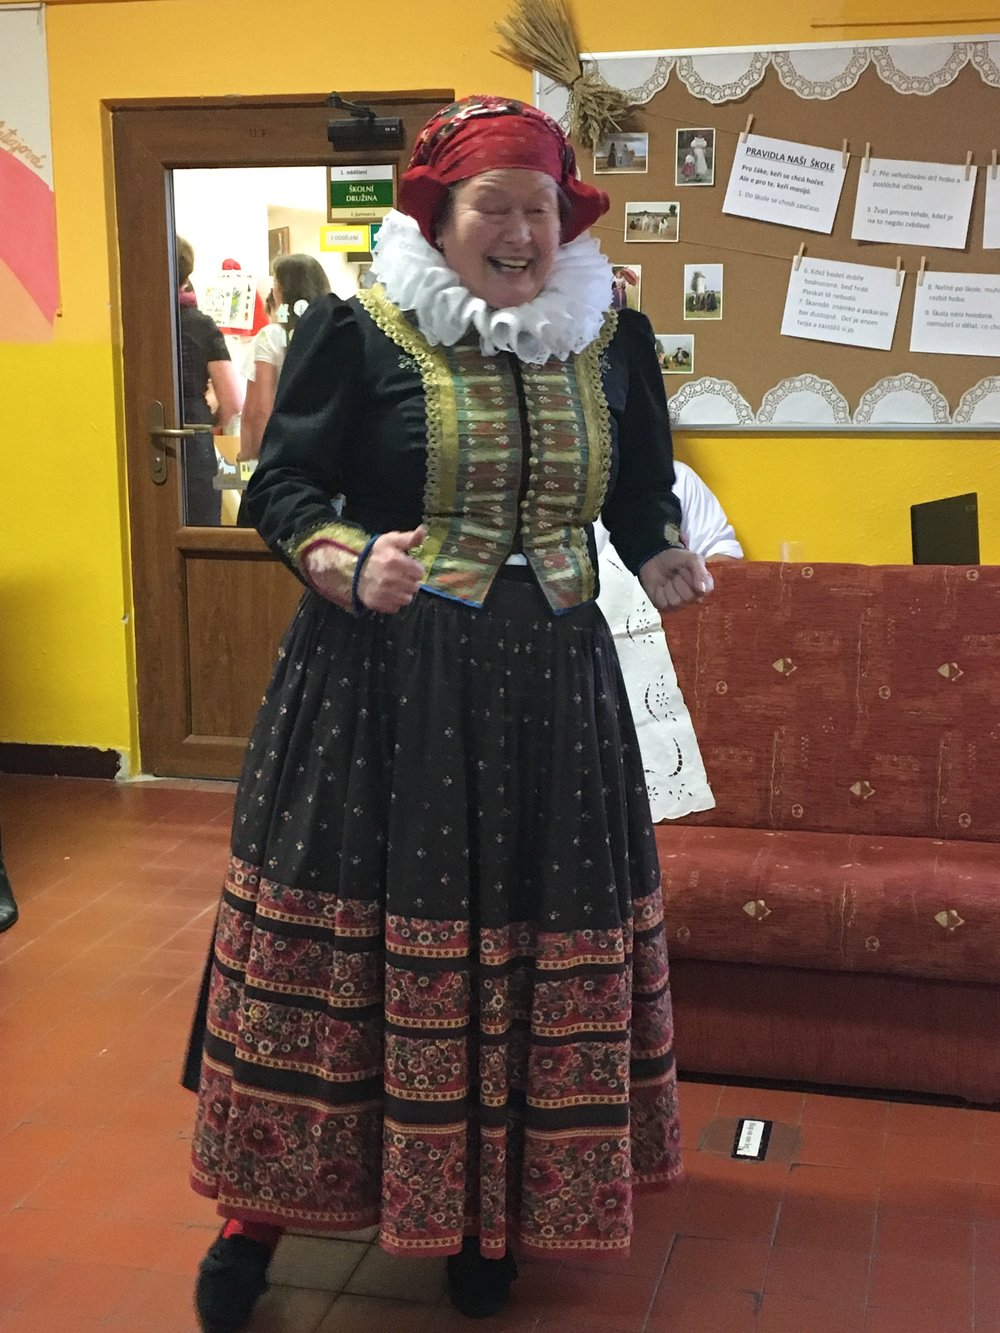 One of Addey's teachers dressed in an old fashioned Czech dress, as she taught the students.